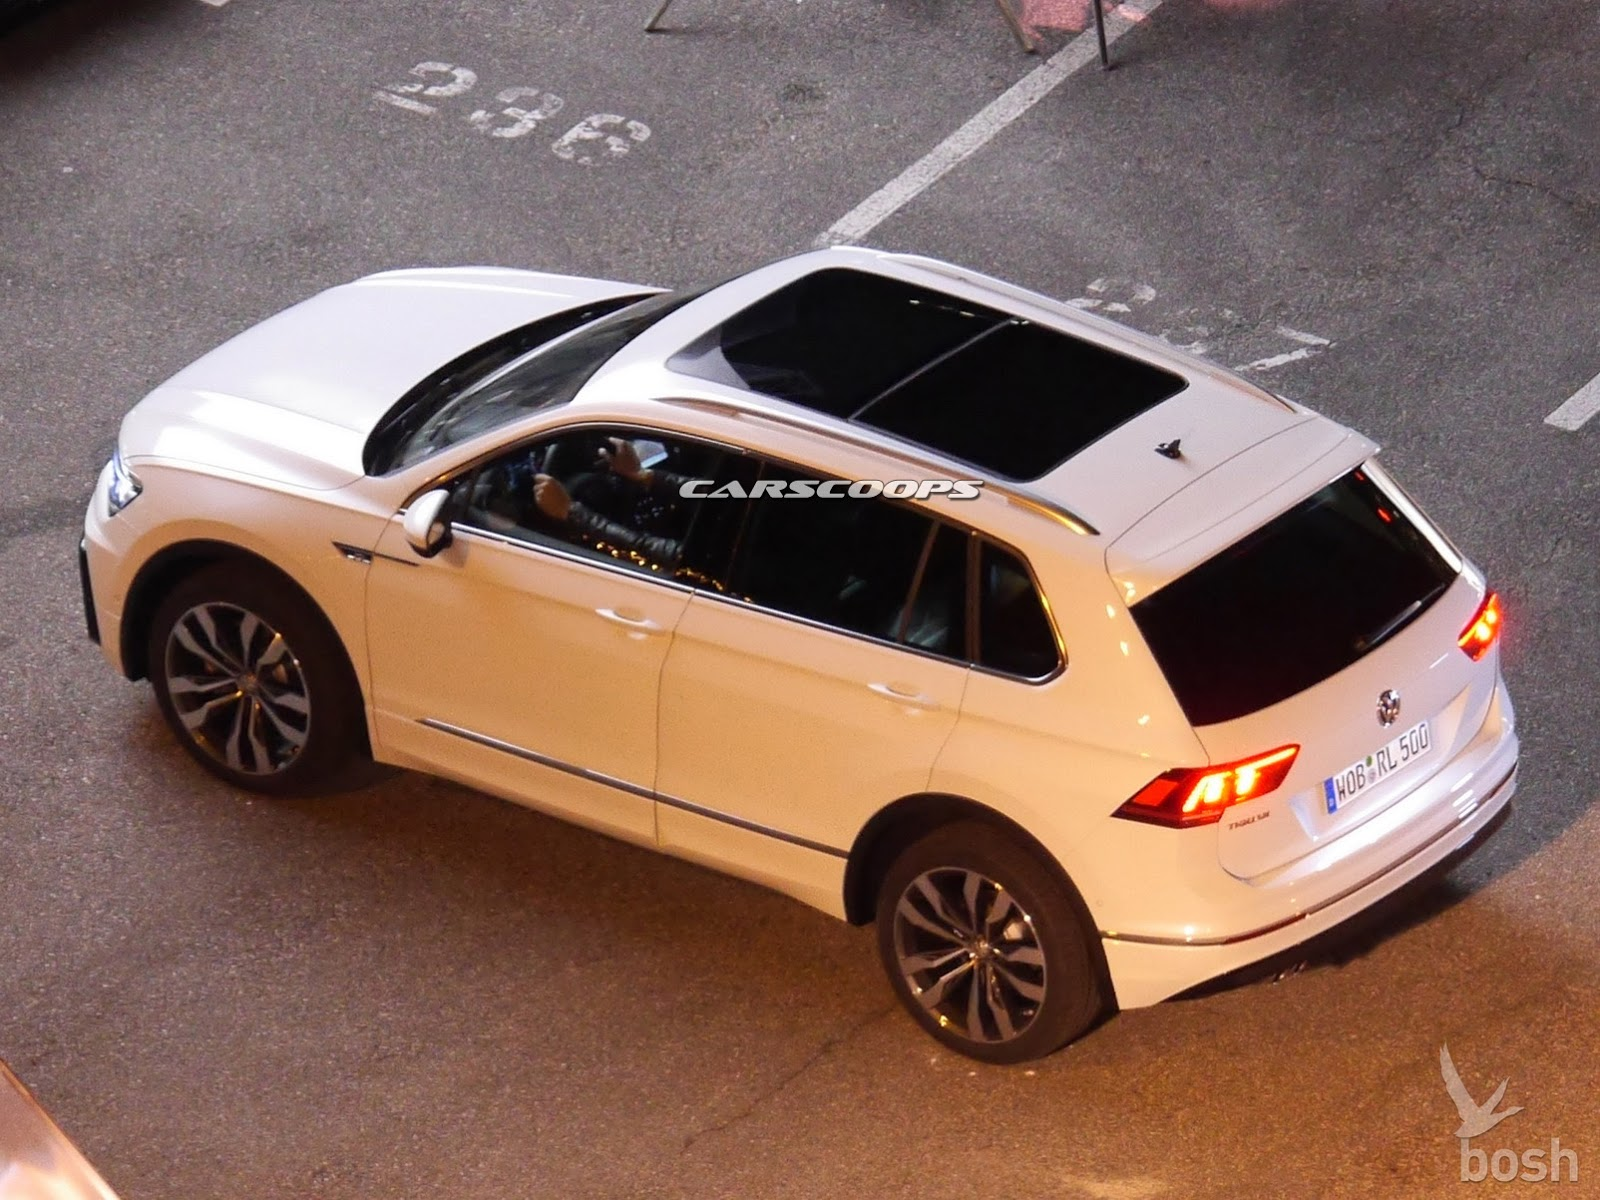 new 2017 vw tiguan photographed completely undisguised carscoops. Black Bedroom Furniture Sets. Home Design Ideas